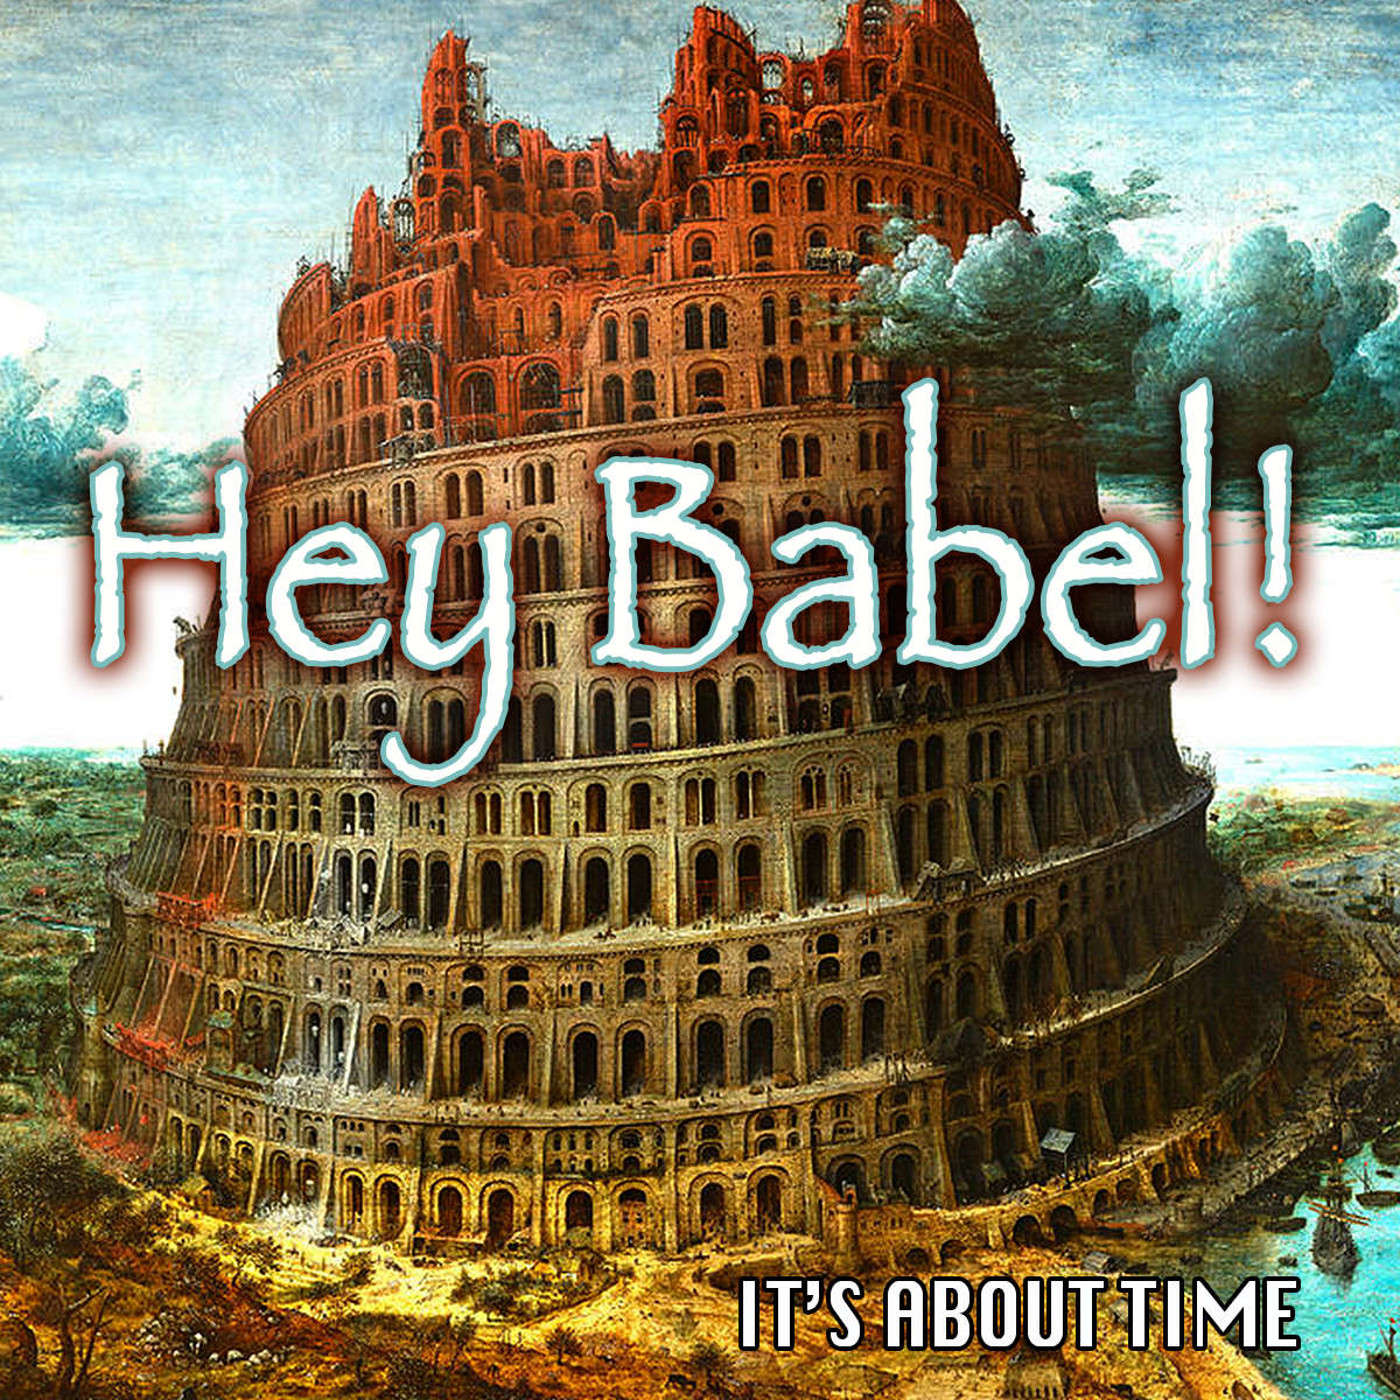 S01E10 - Hey Bable! - Time travel back to consult with Hammurabi.